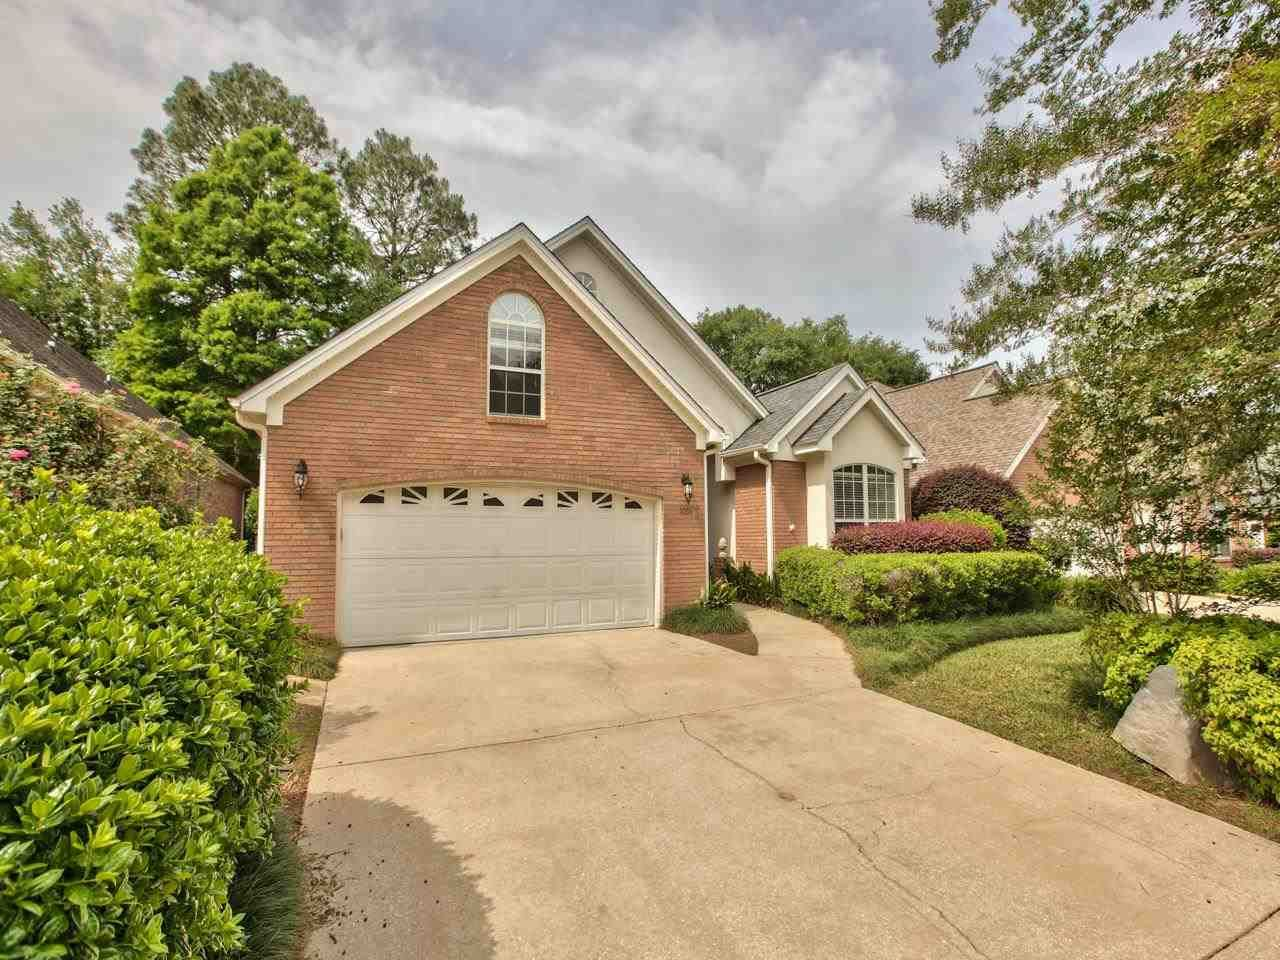 3069 Sawgrass Circle, Tallahassee, FL 32309 - MLS#: 331030